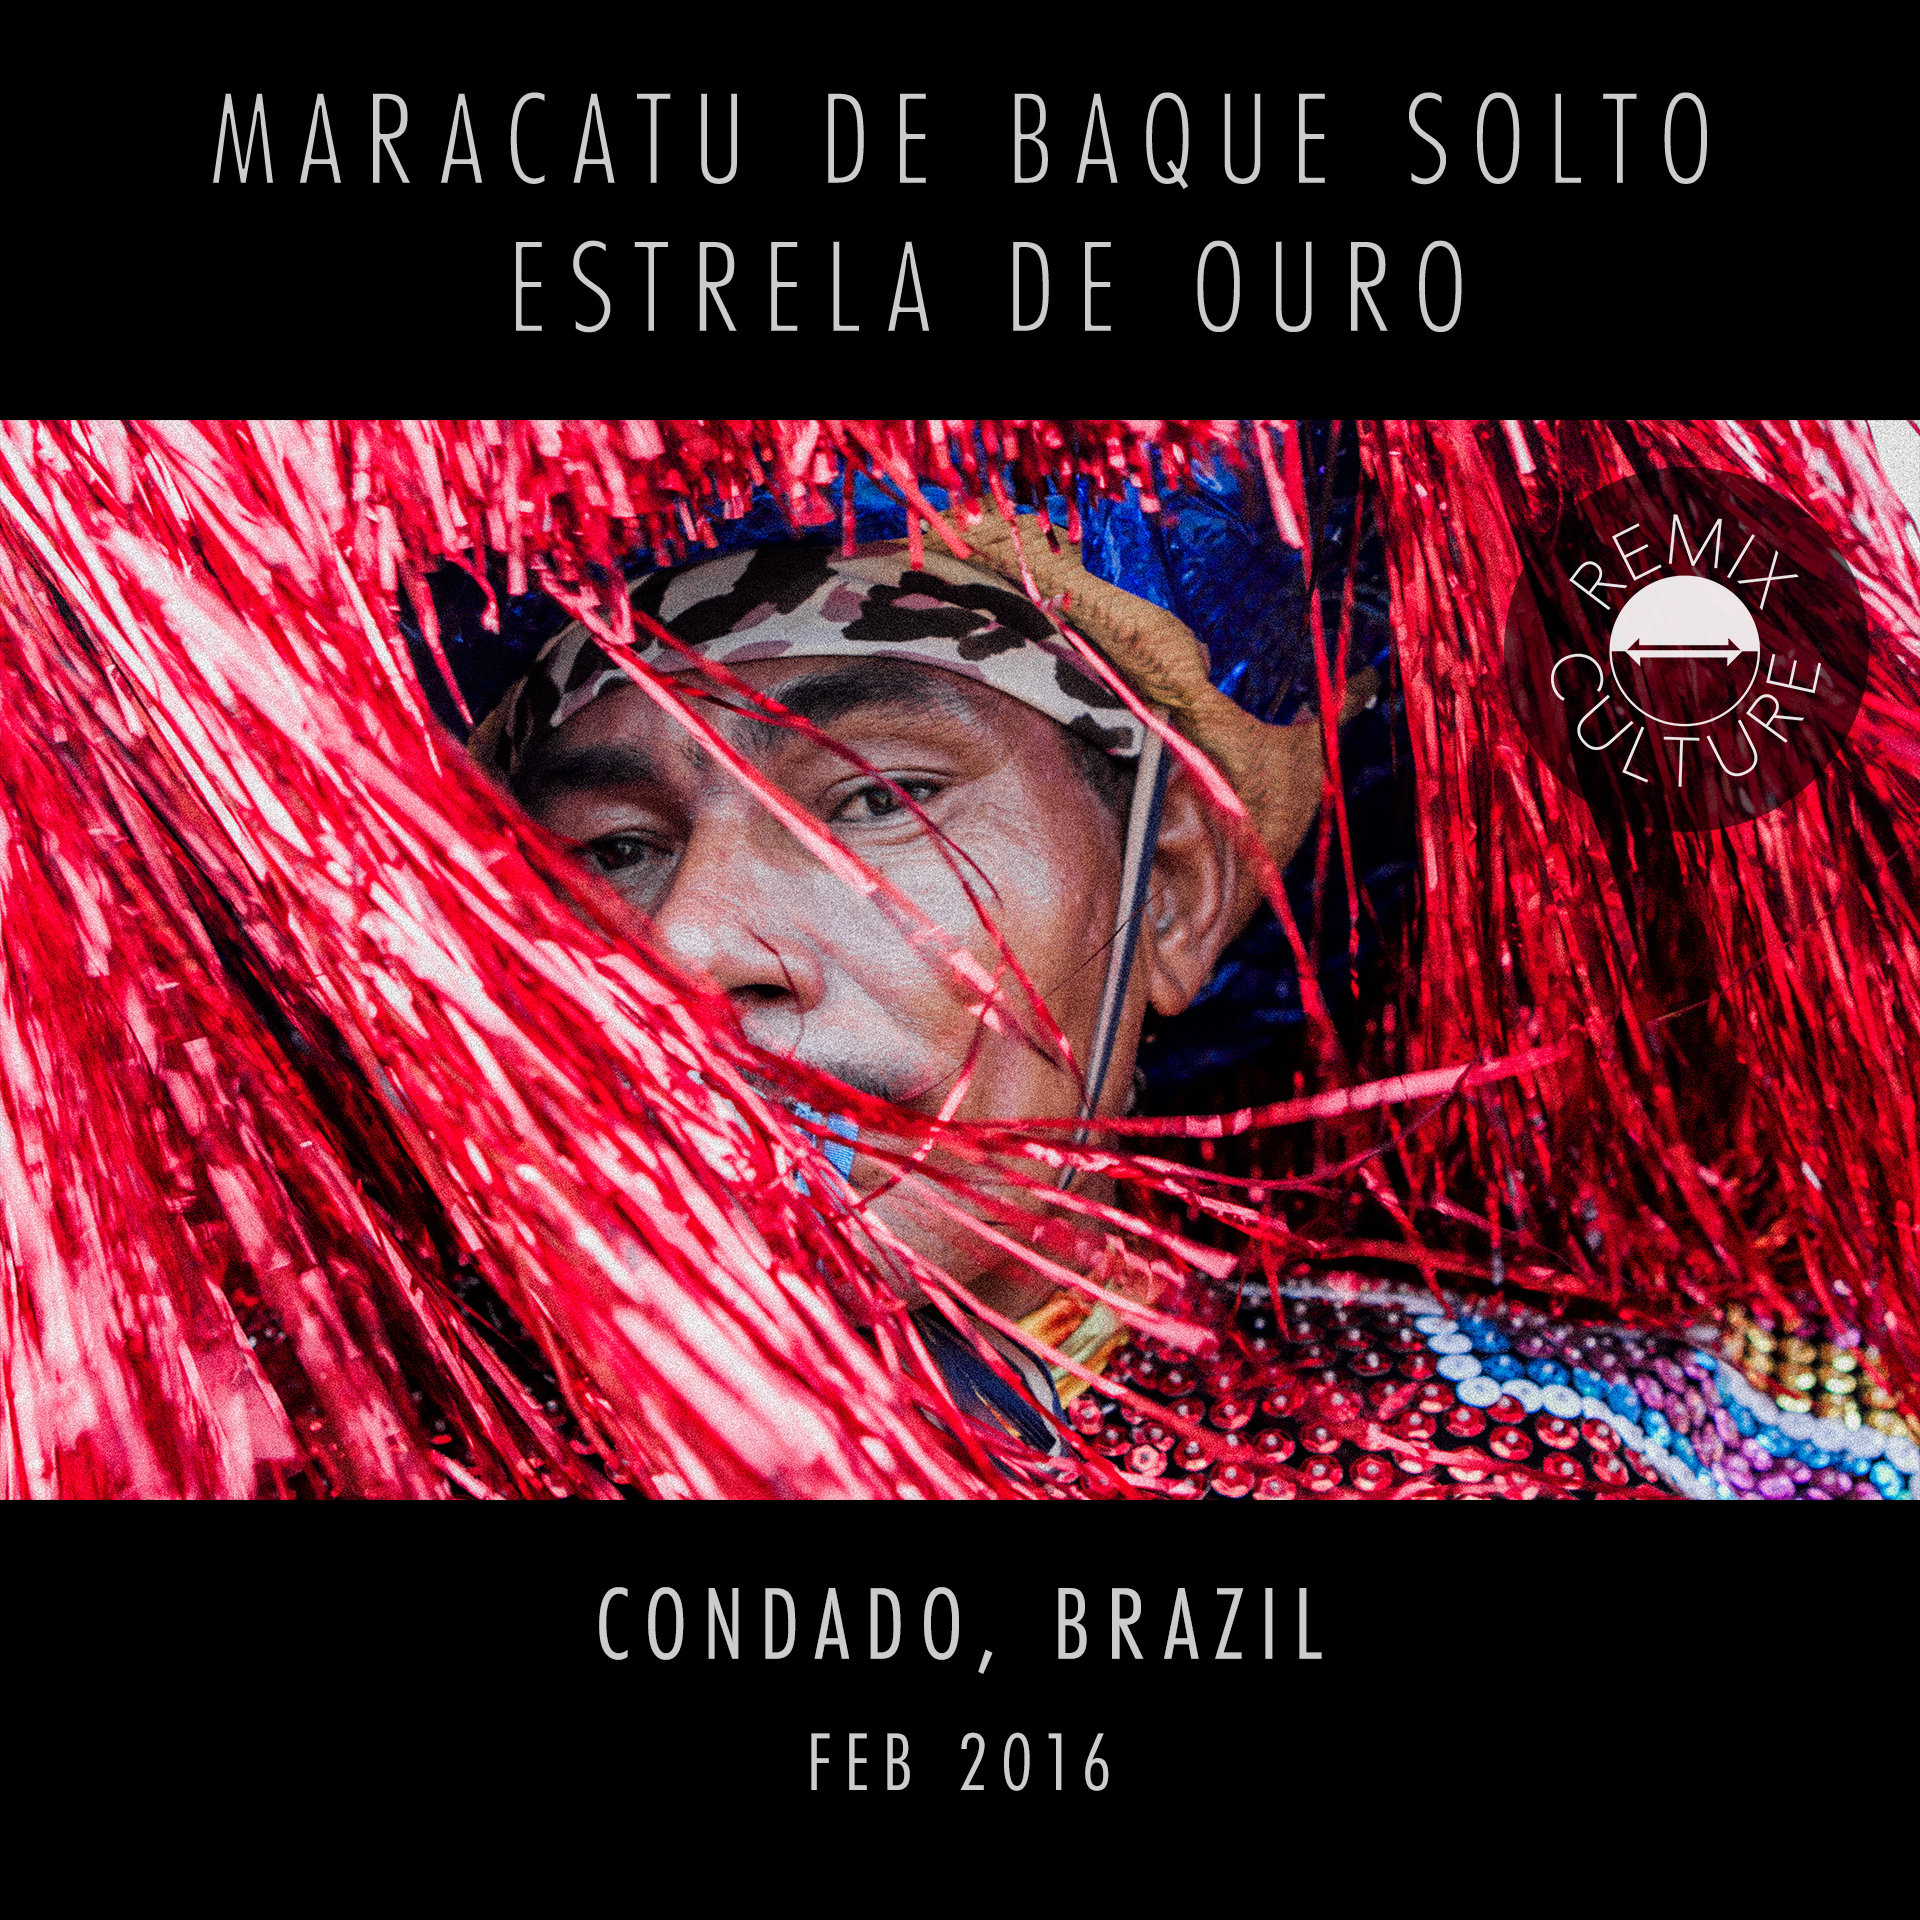 Rooted in Afro-indigenous practices, this rural northeastern Brazilian ensemble celebrates the annual sugarcane harvest by oscillating between meditative solo vocal melodies and frenetic drums, horns, and dancers with bells dangling from their stunningly elaborate costumes.